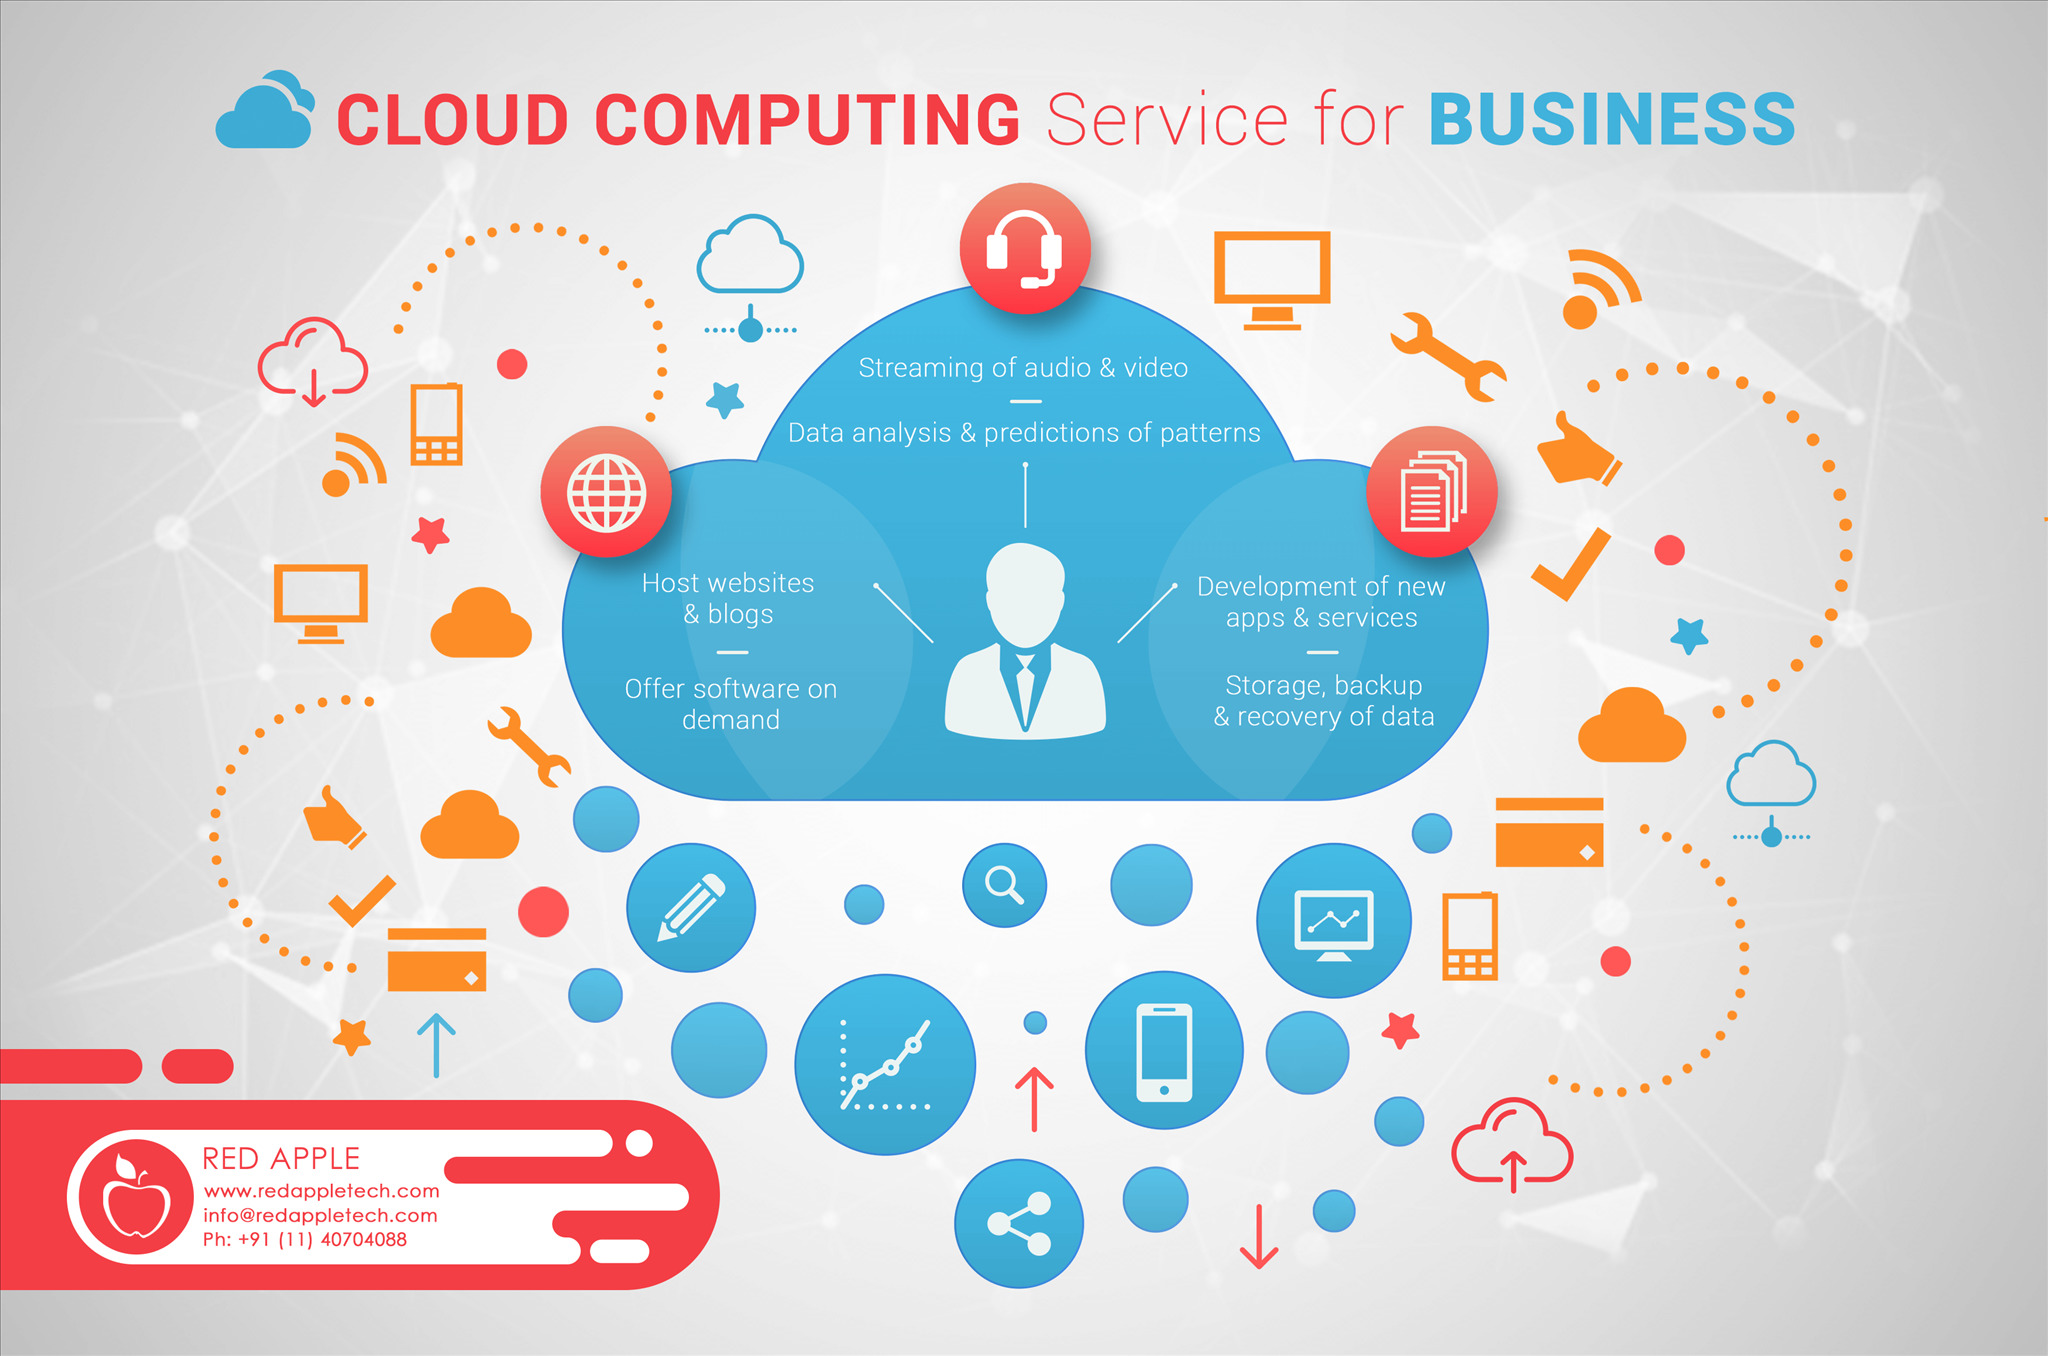 Cloud Computing Service for Business Enhancing the Growth ...